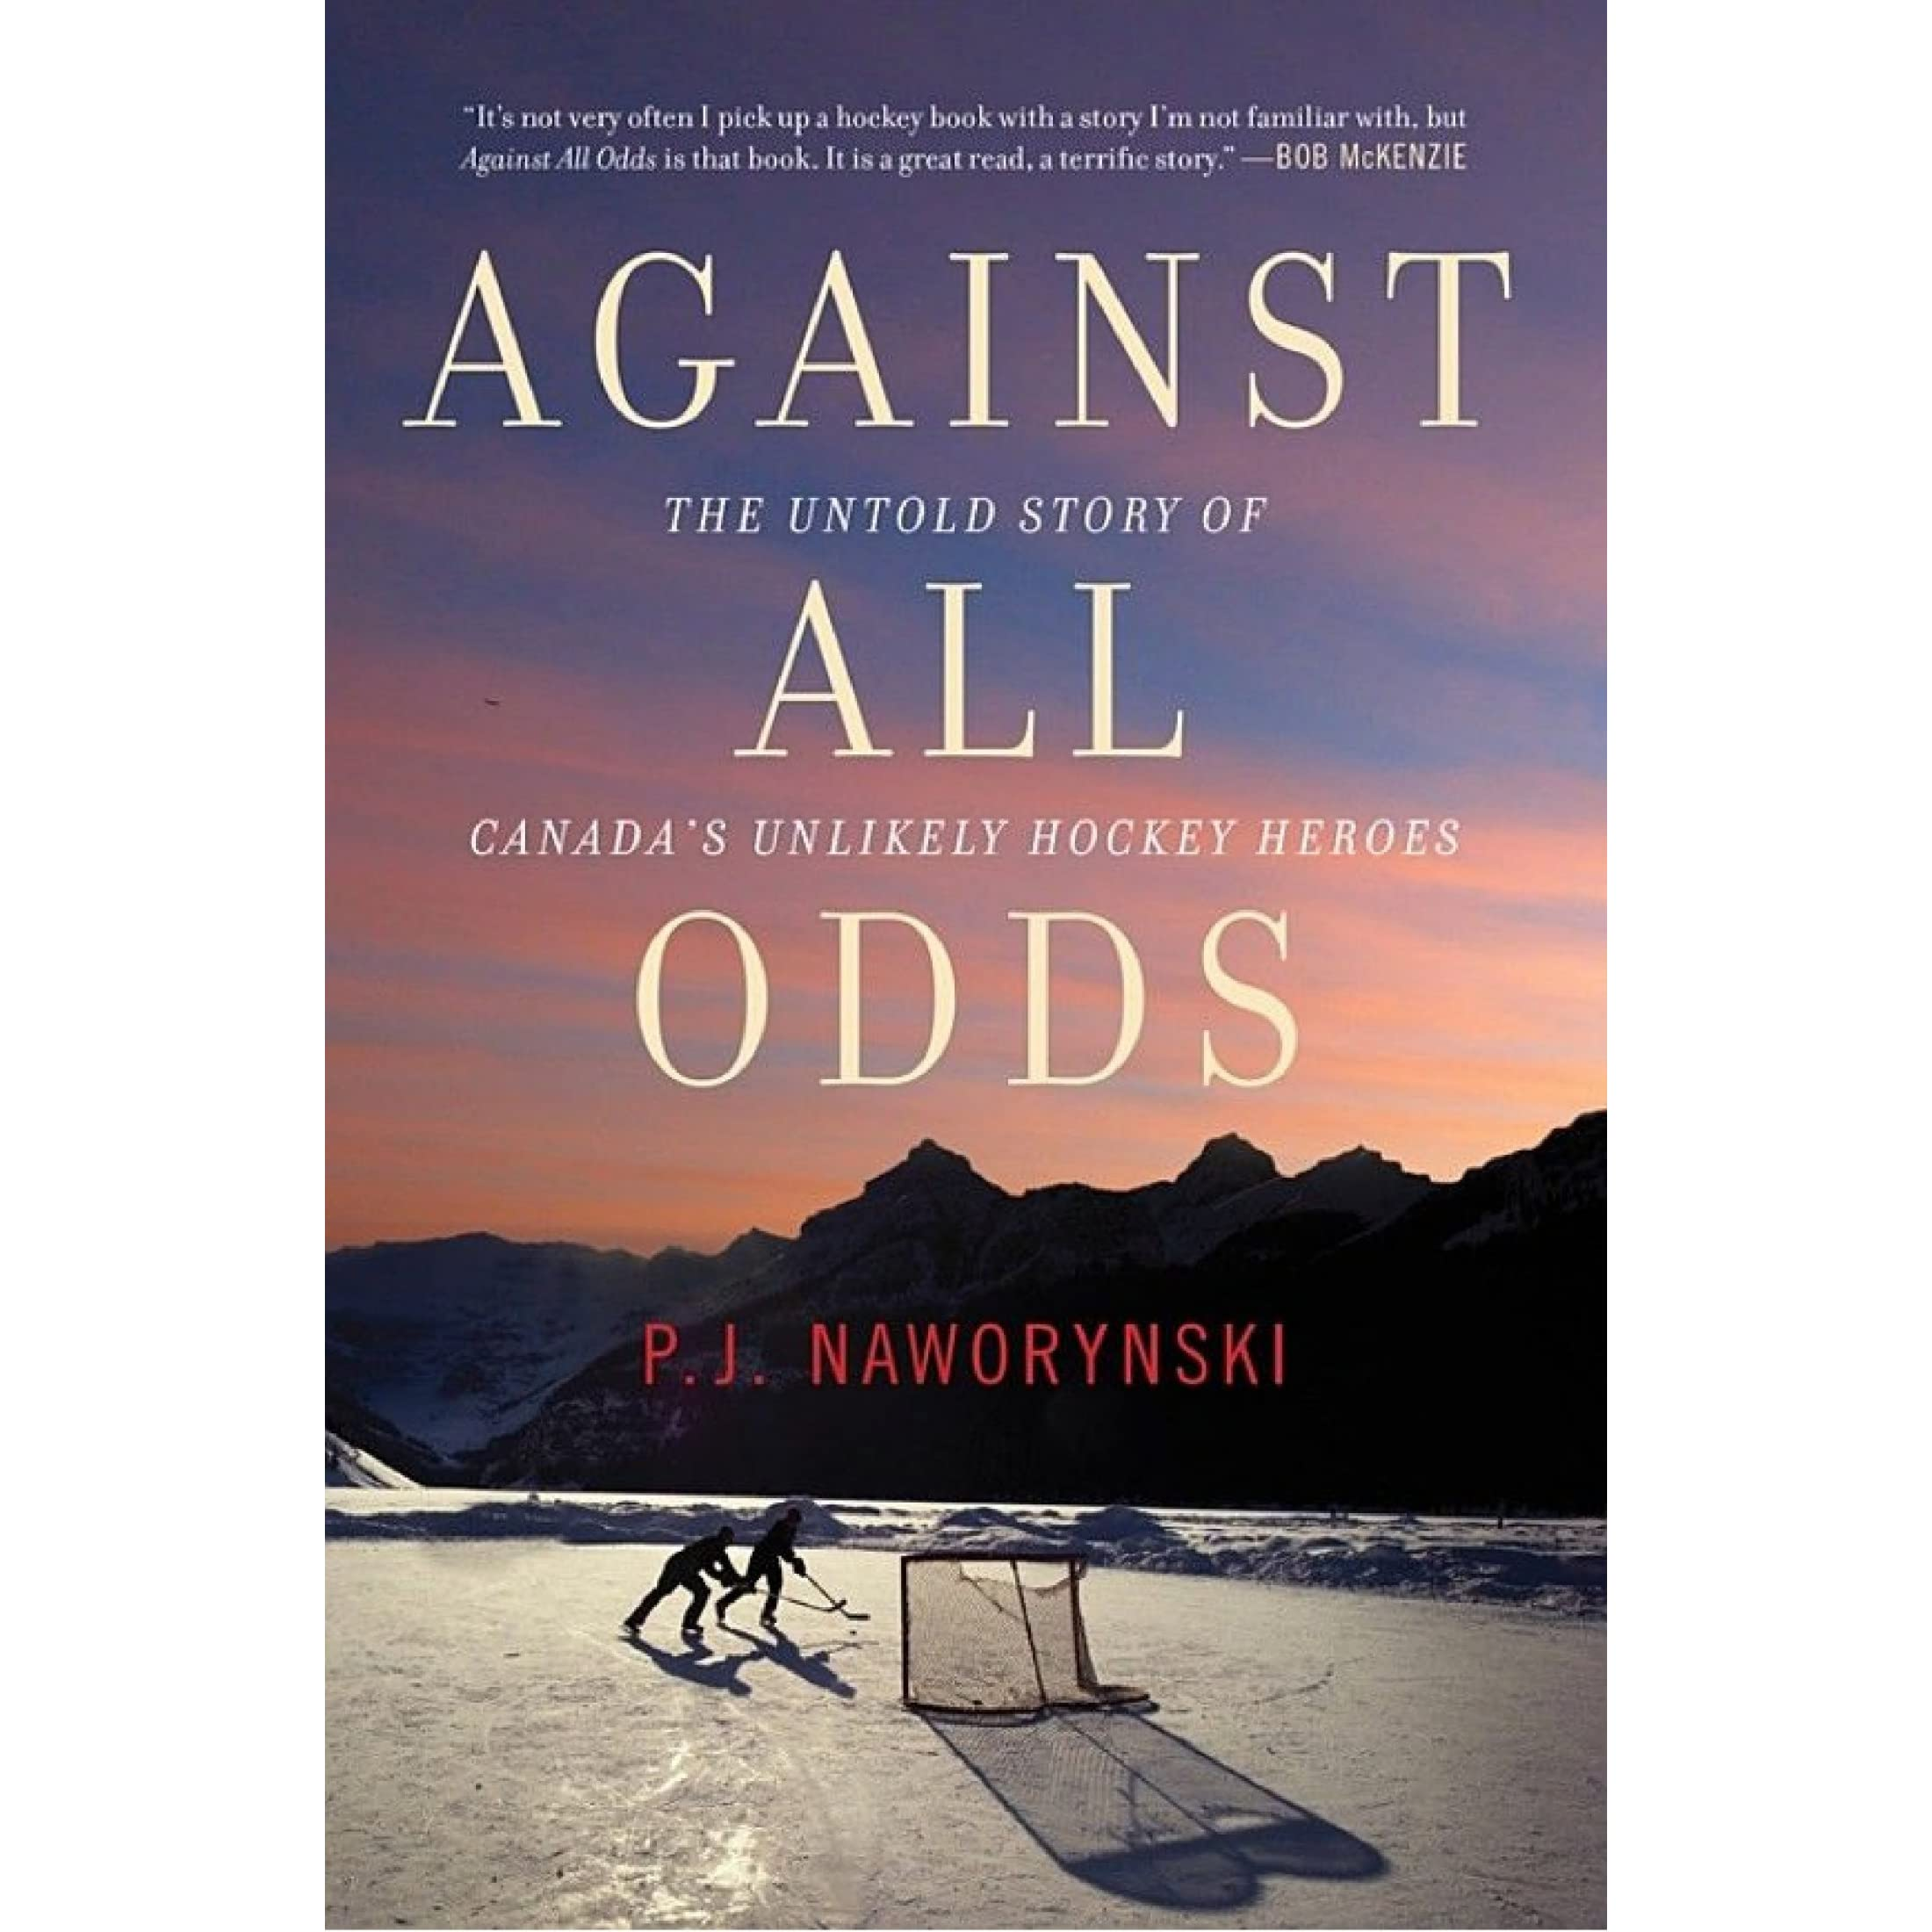 Against All Odds: The Untold Story of Canada's Unlikely